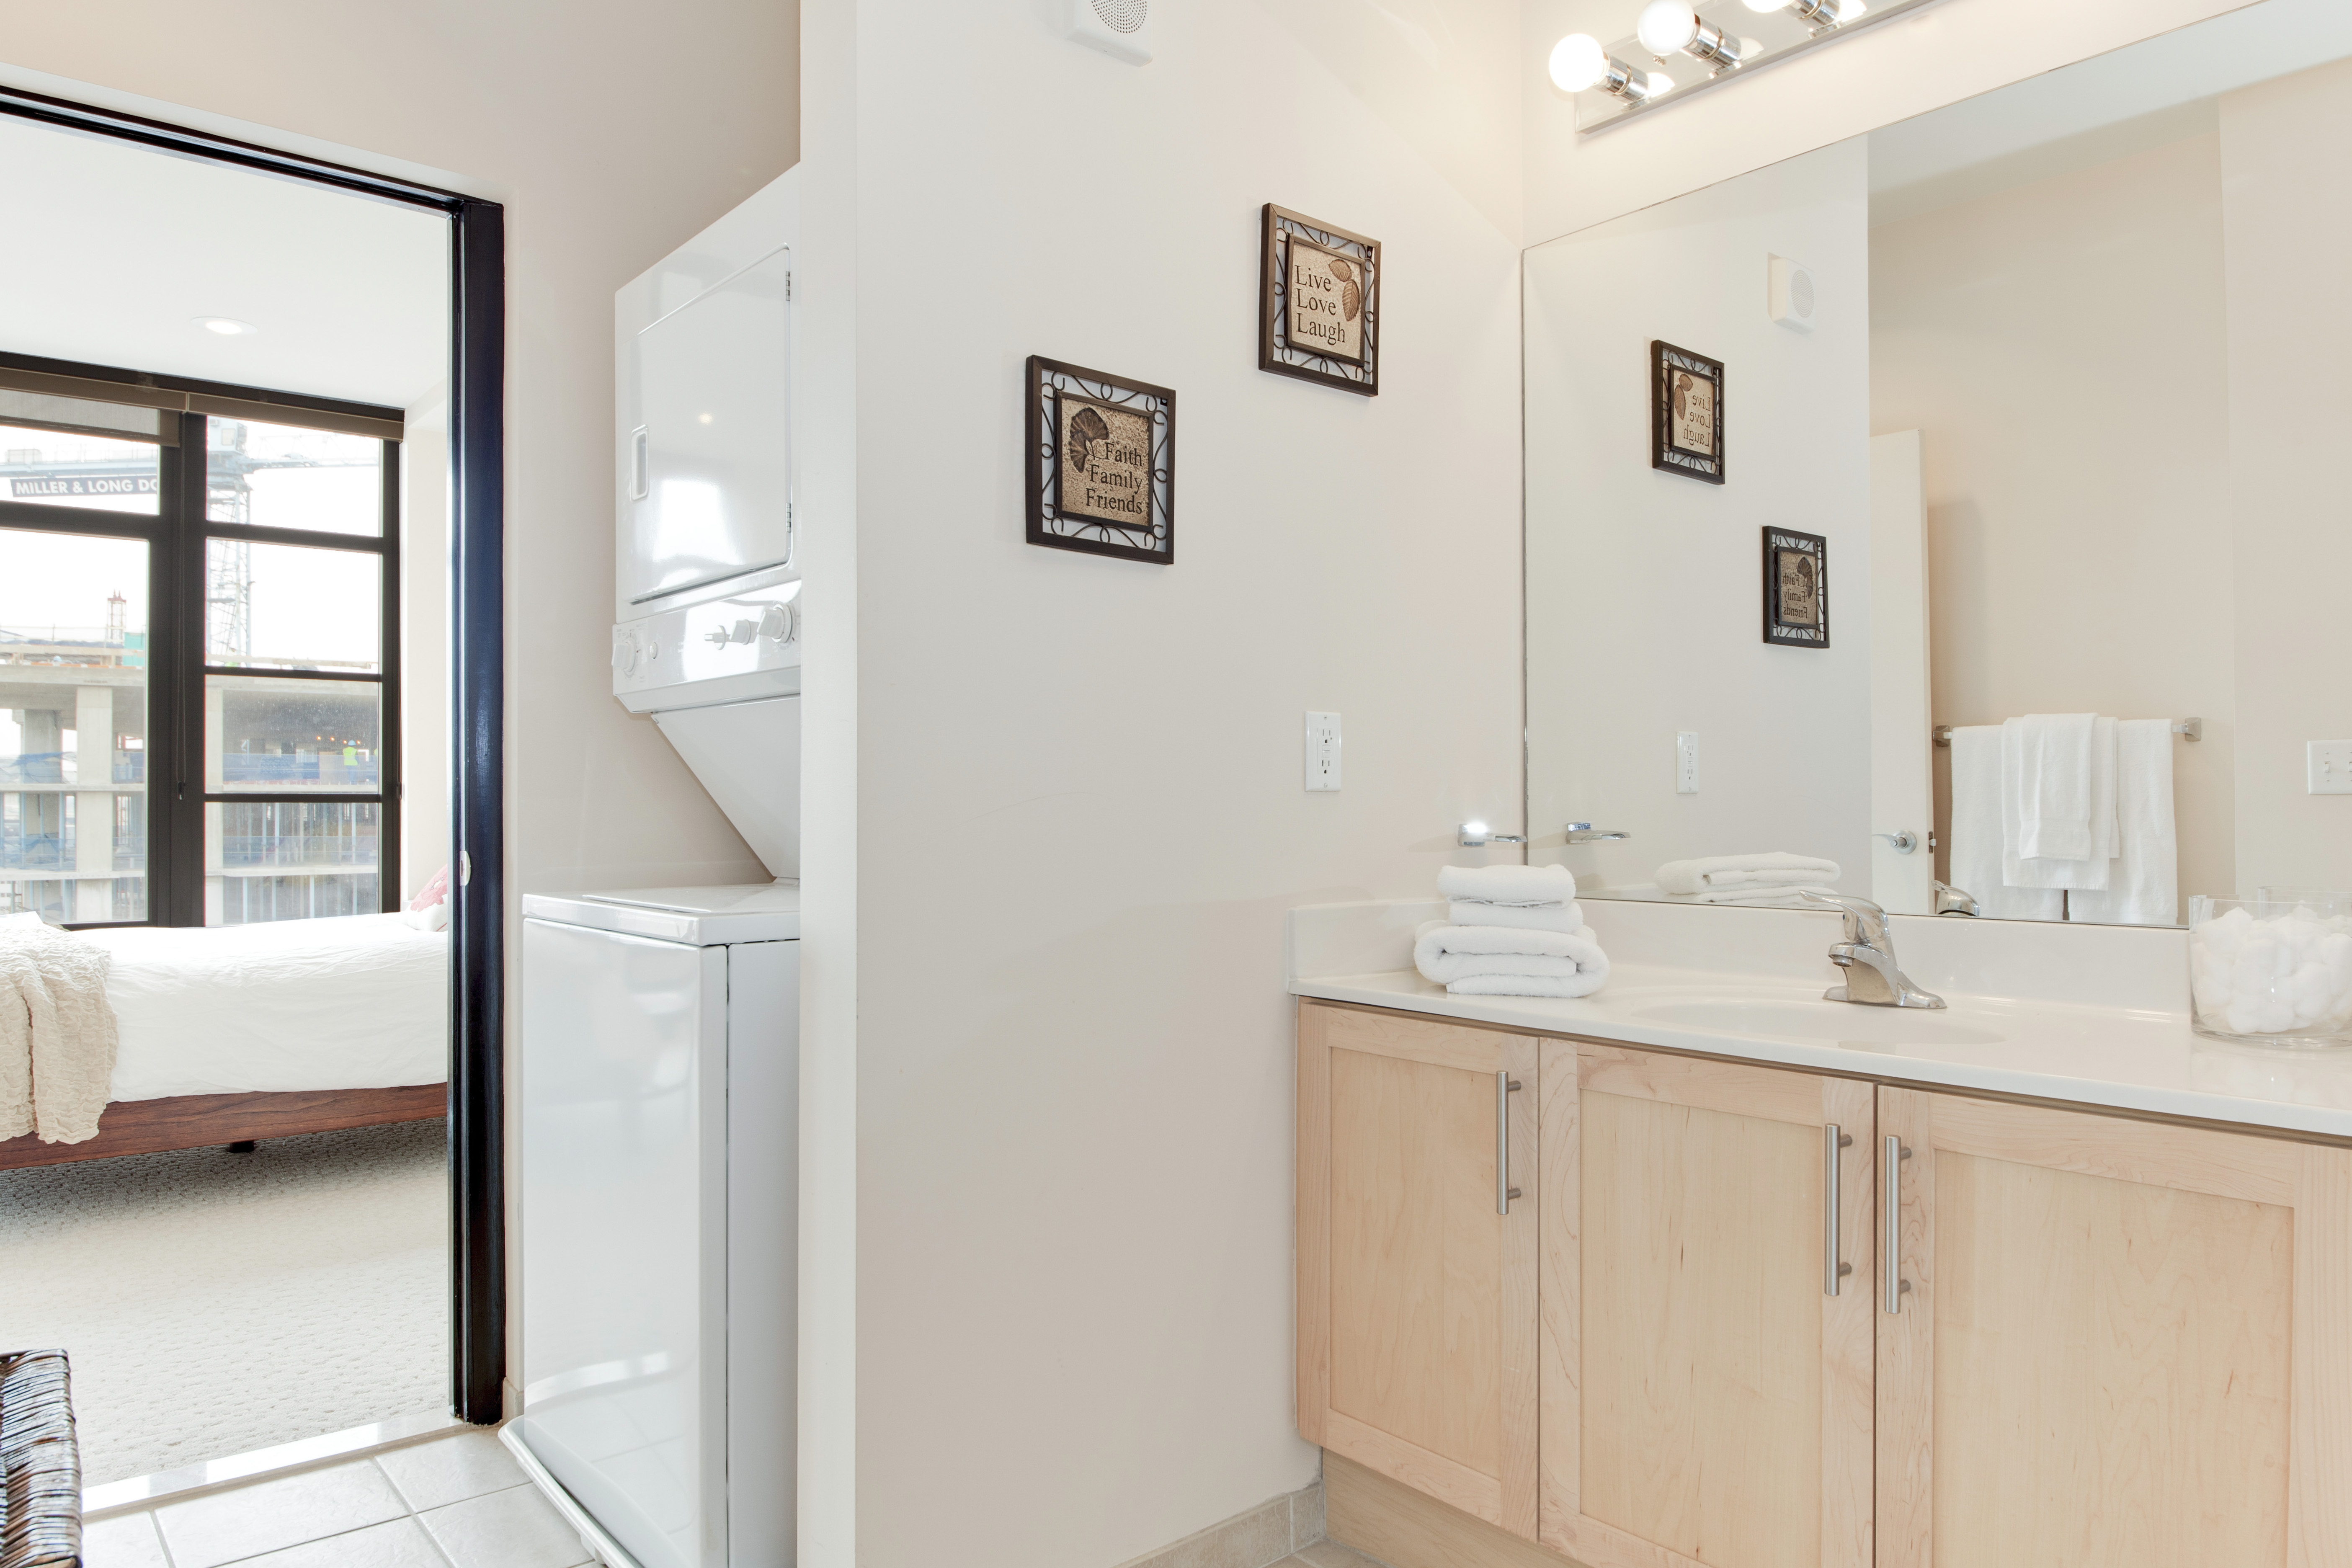 Second full bathroom with laundry